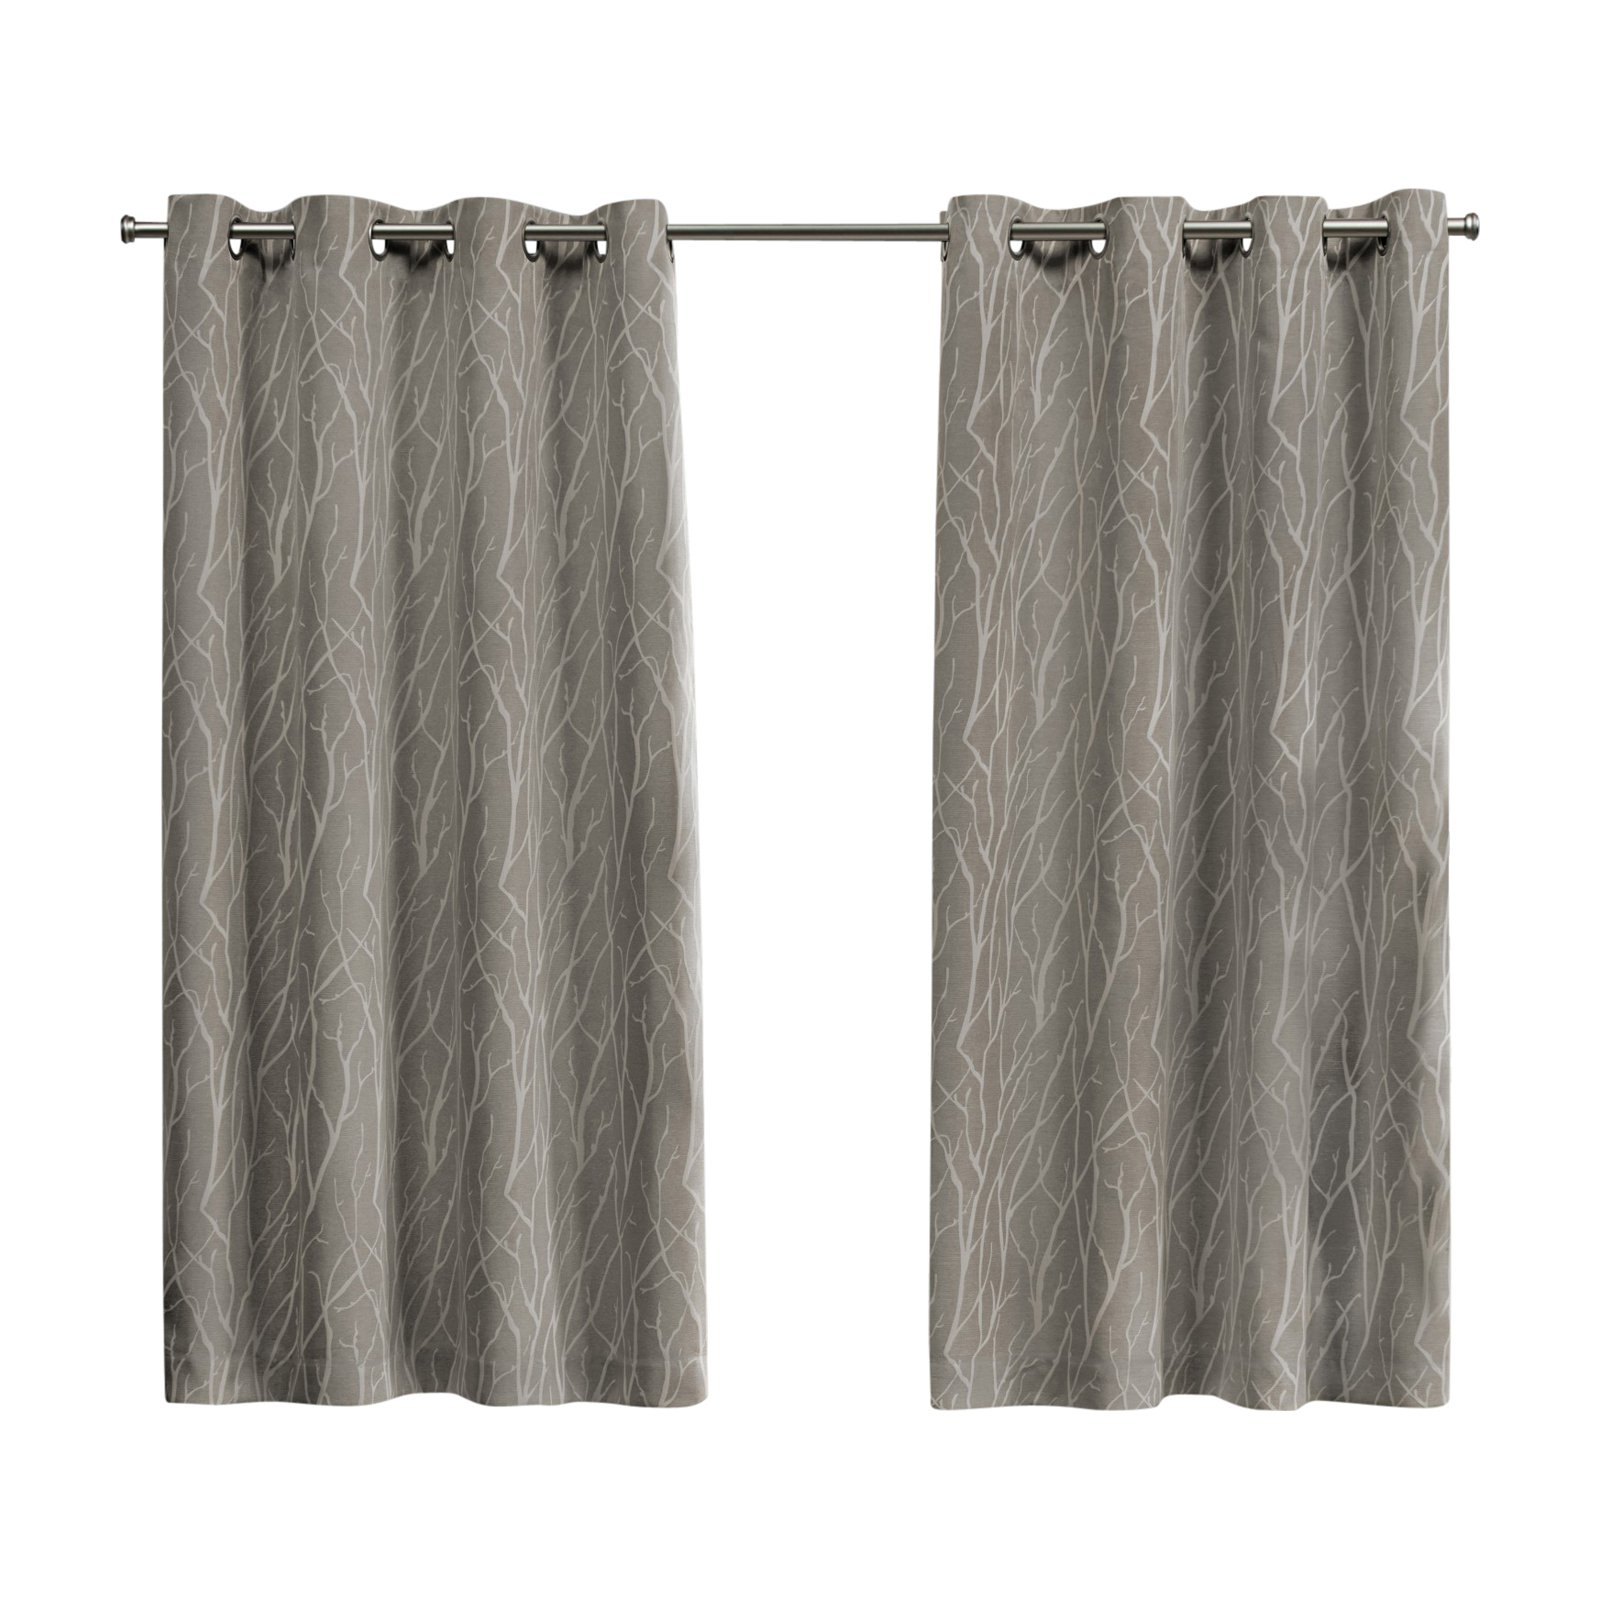 Widely Used Forest Hill Woven Blackout Grommet Top Curtain Panel Pairs Inside Exclusive Home Forest Hill Blackout Grommet Curtain Panel (View 19 of 20)